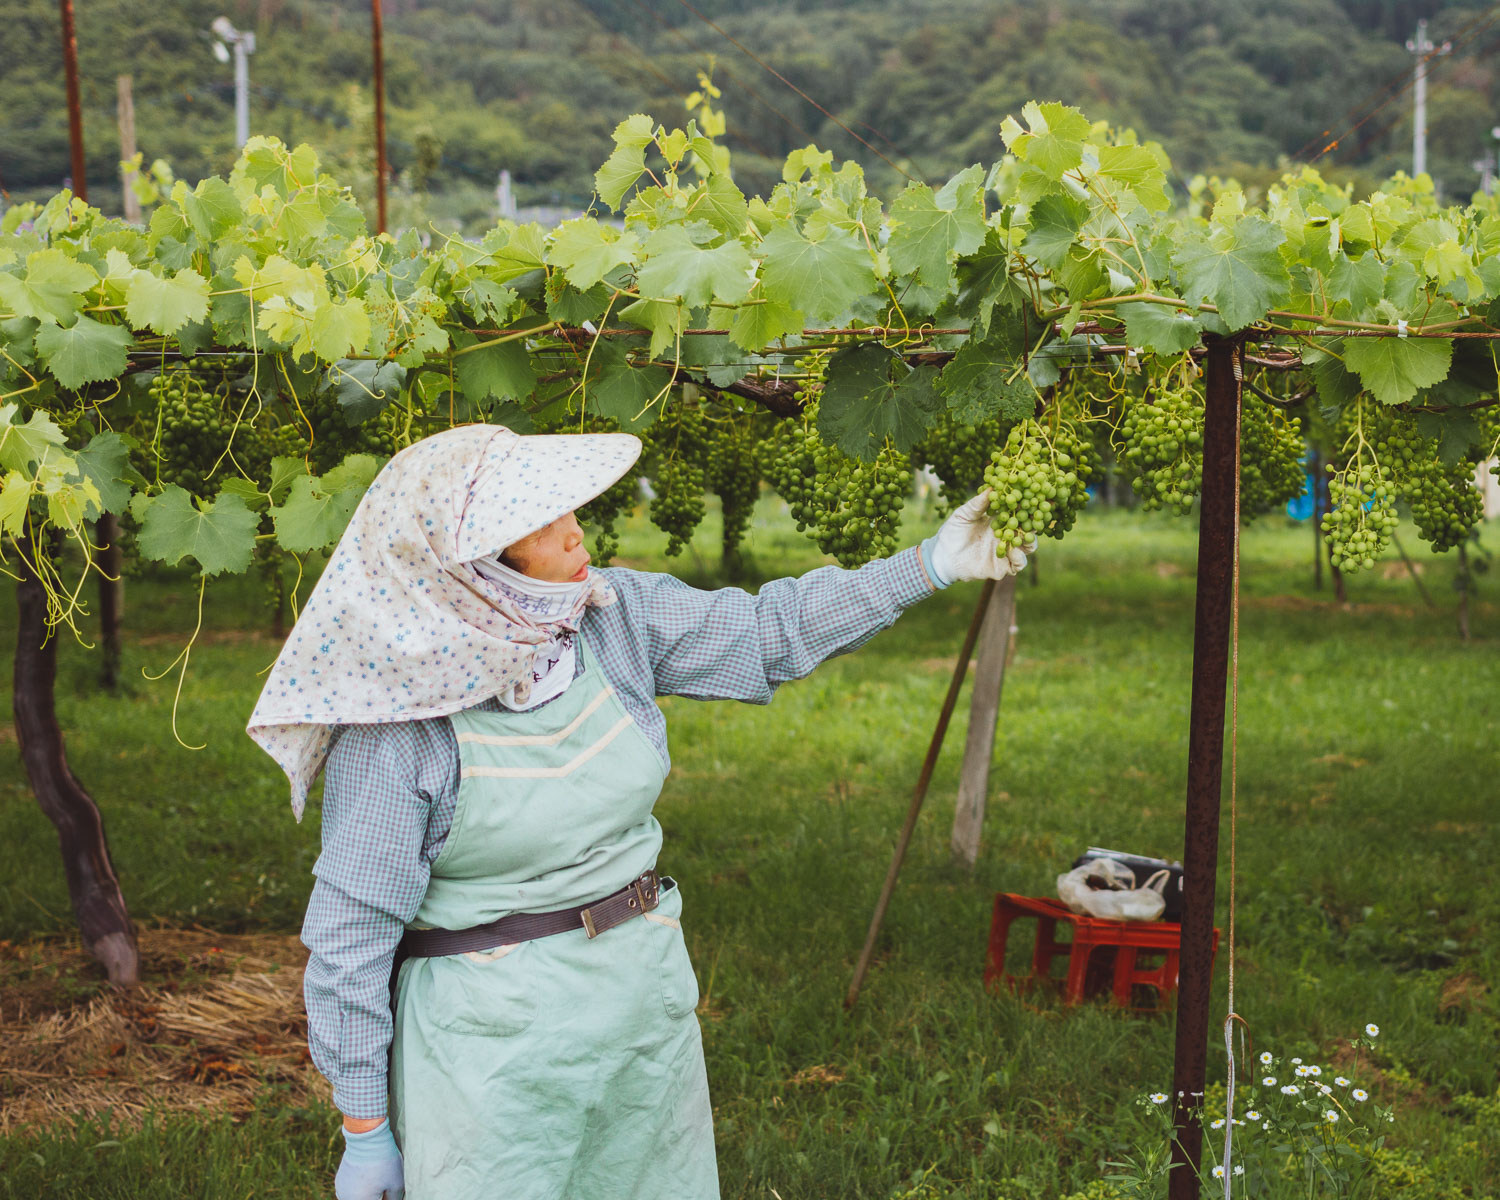 A Japanese farmer shows her muscat grapes near Ueda, Nagano, Japan